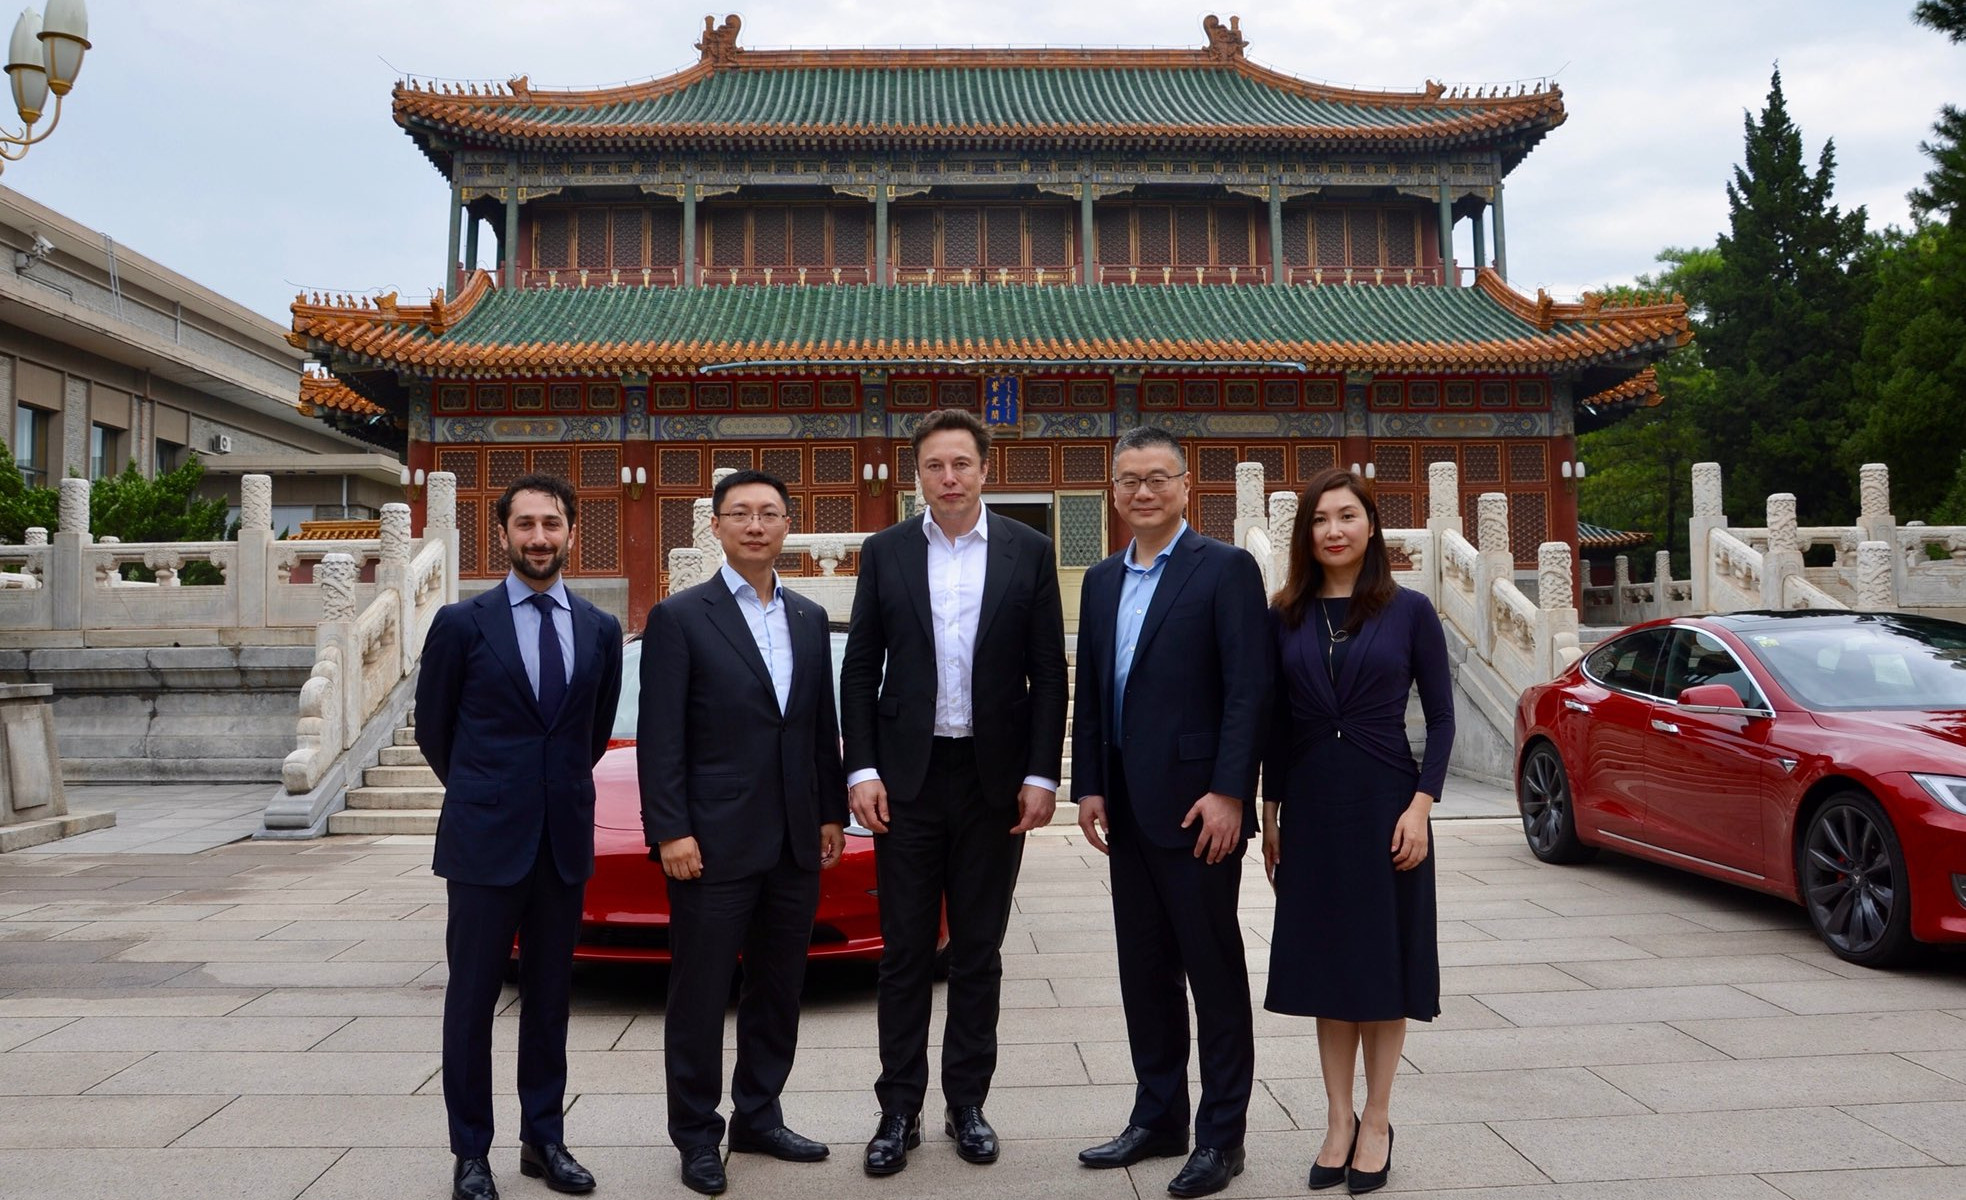 nikkei.com - Staff Writer - Teslas in the palace signal brewing battle in Beijing